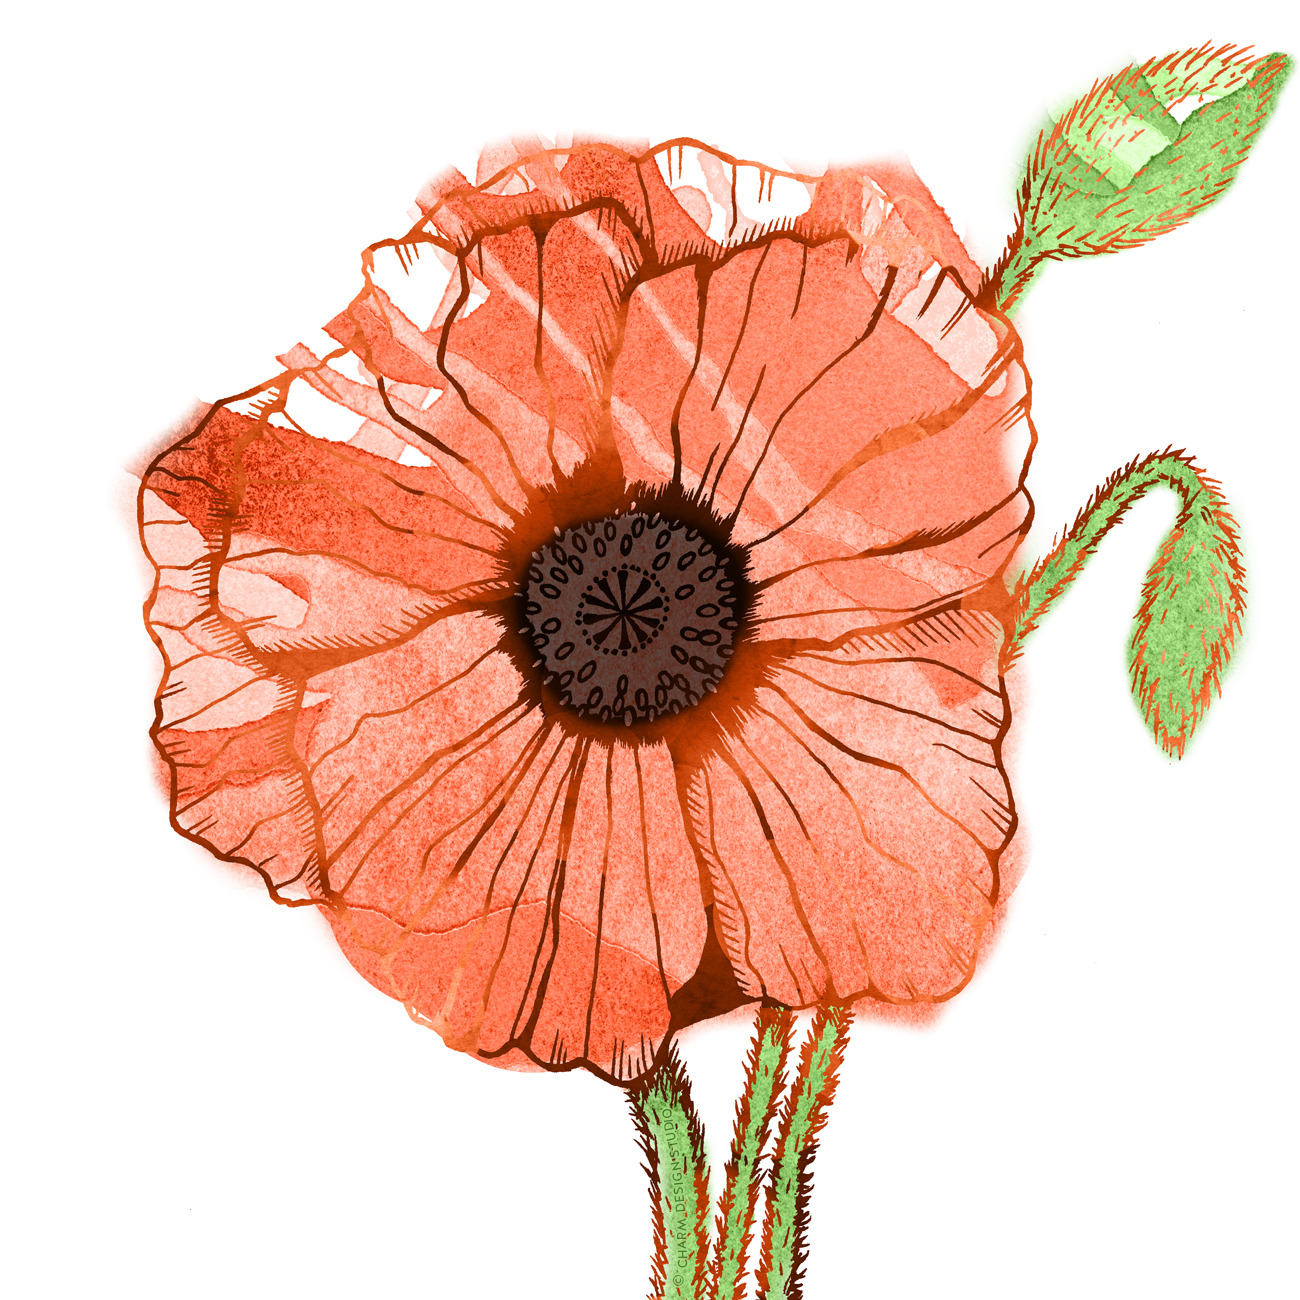 Garden Sunshine poppy illustration; © Charm Design Studio